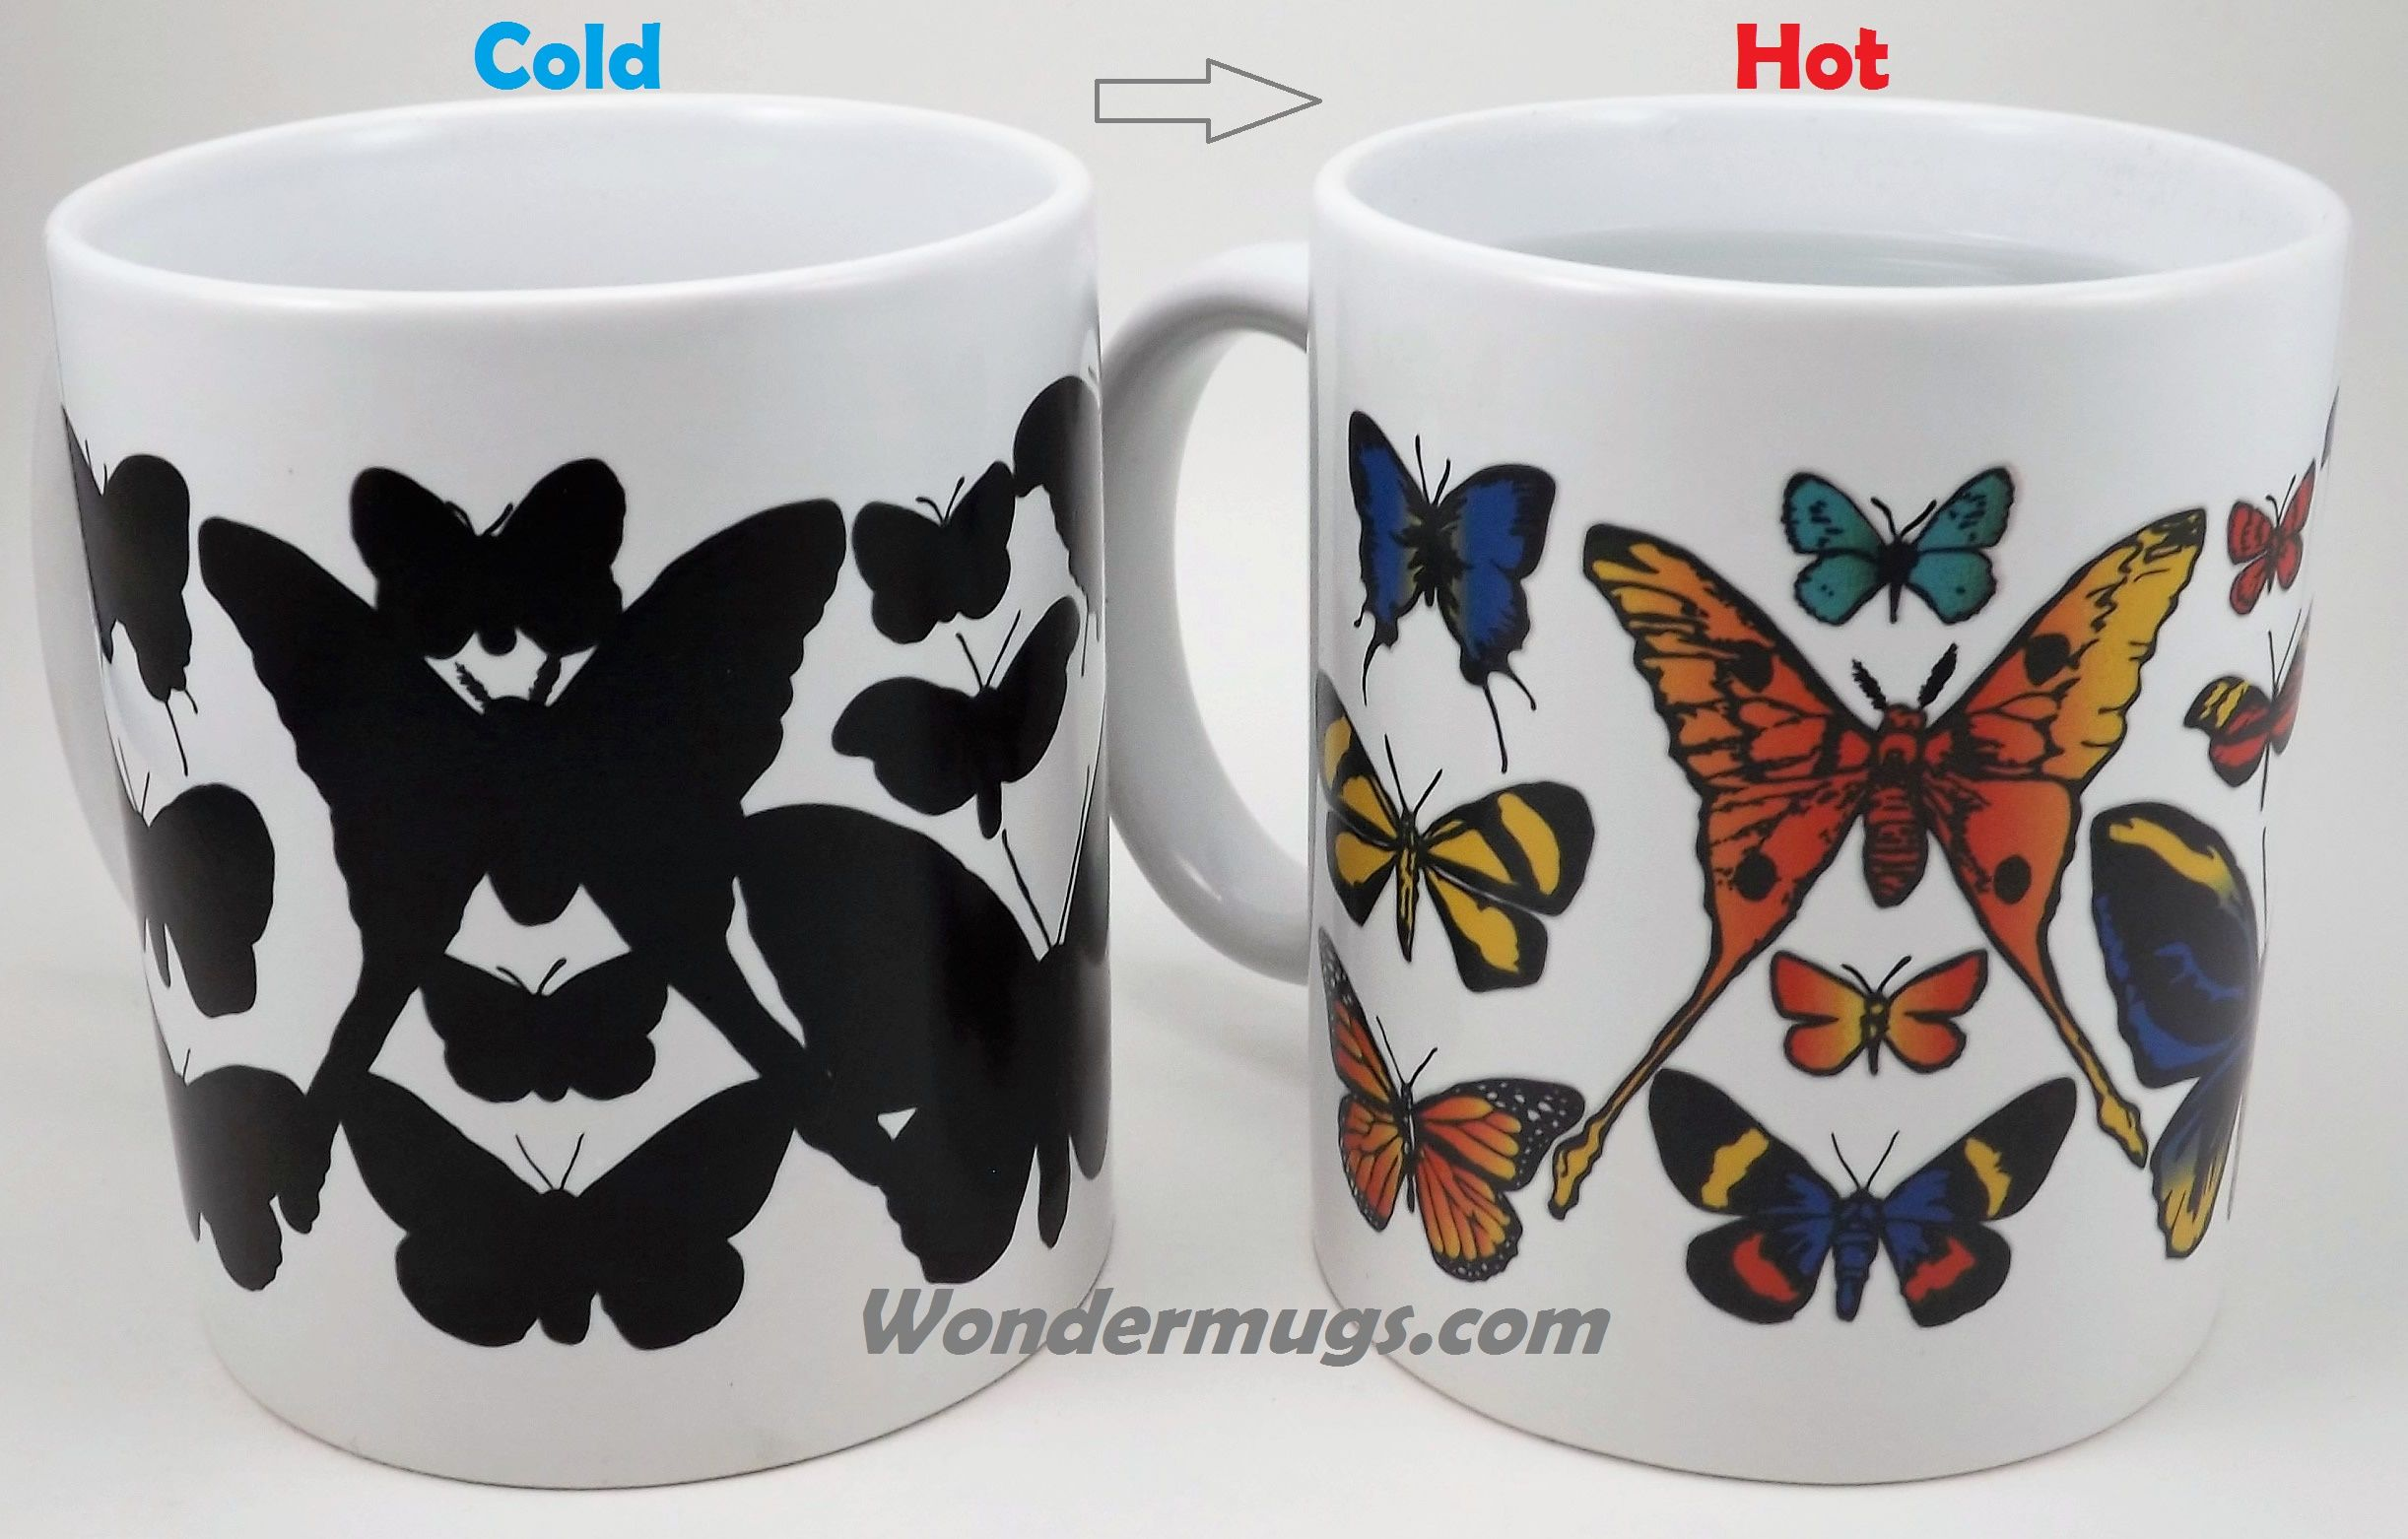 Does your mom enjoy the fluttering of Butterfly wings? Here's a unique gift idea: color changing Butterfly Wondermug!